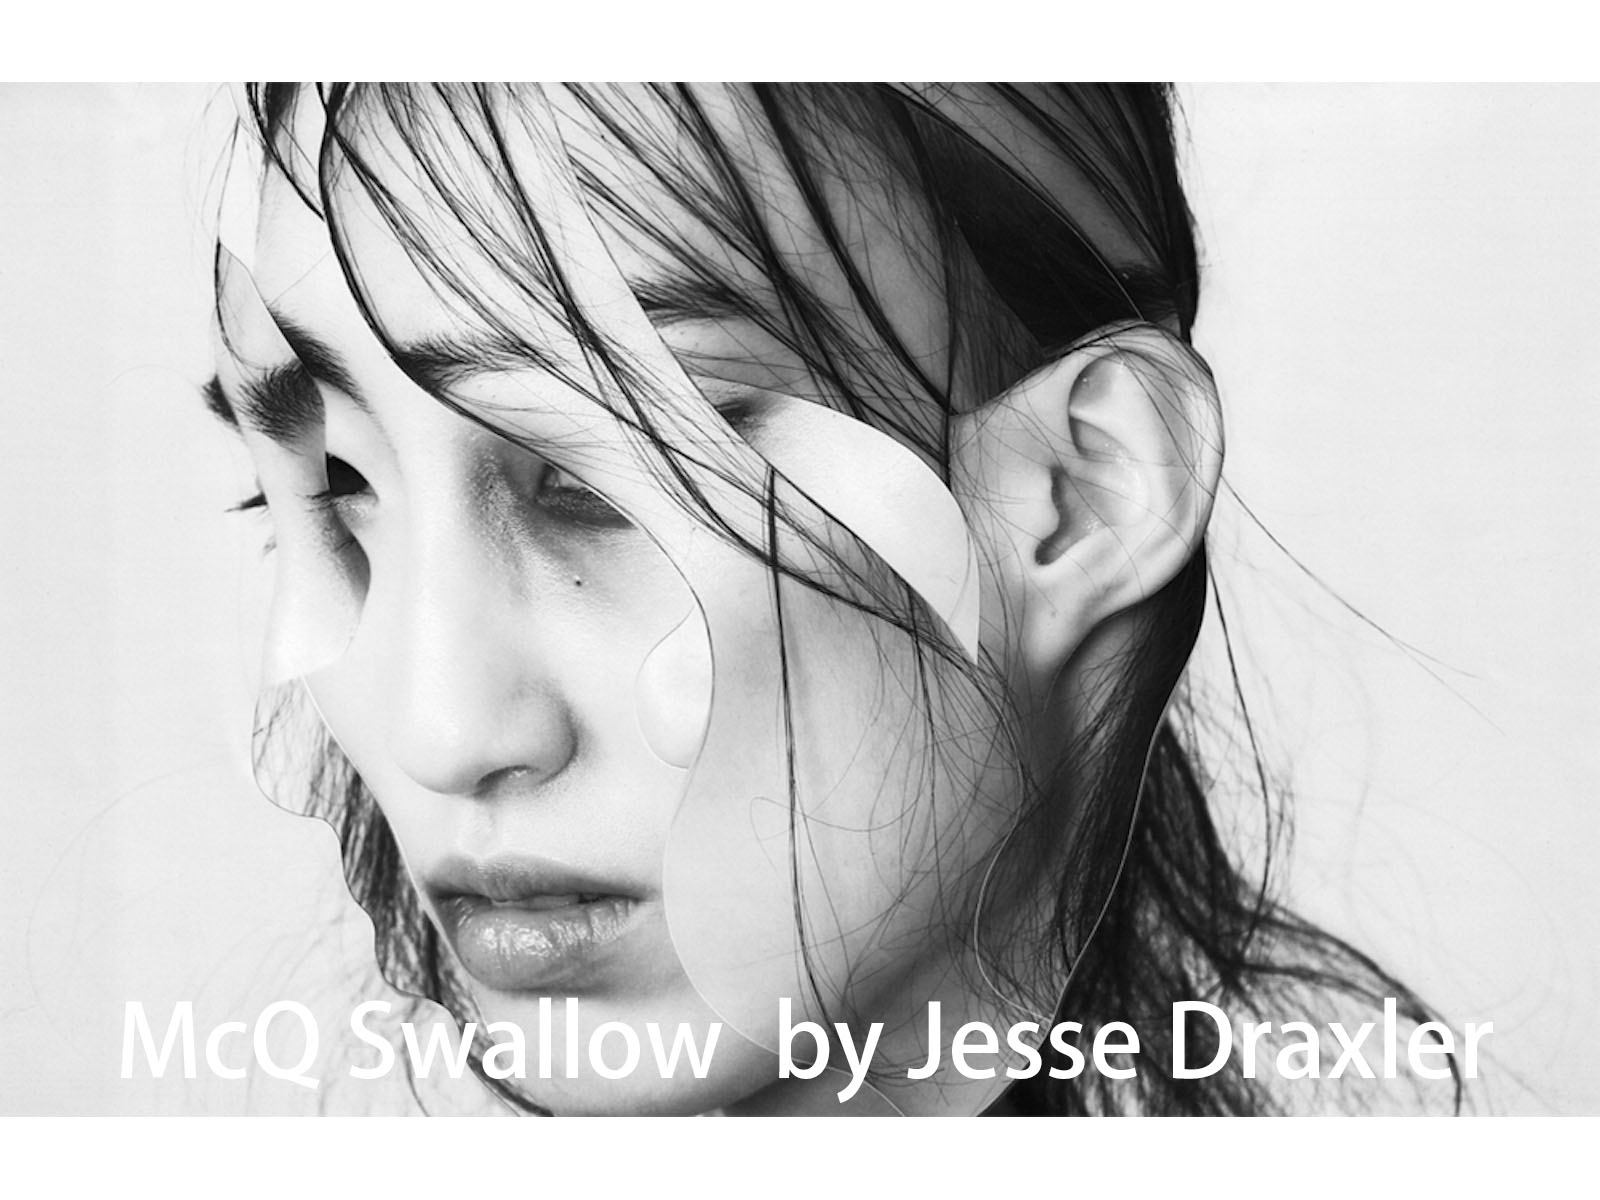 McQ Swallow by Jesse Draxler